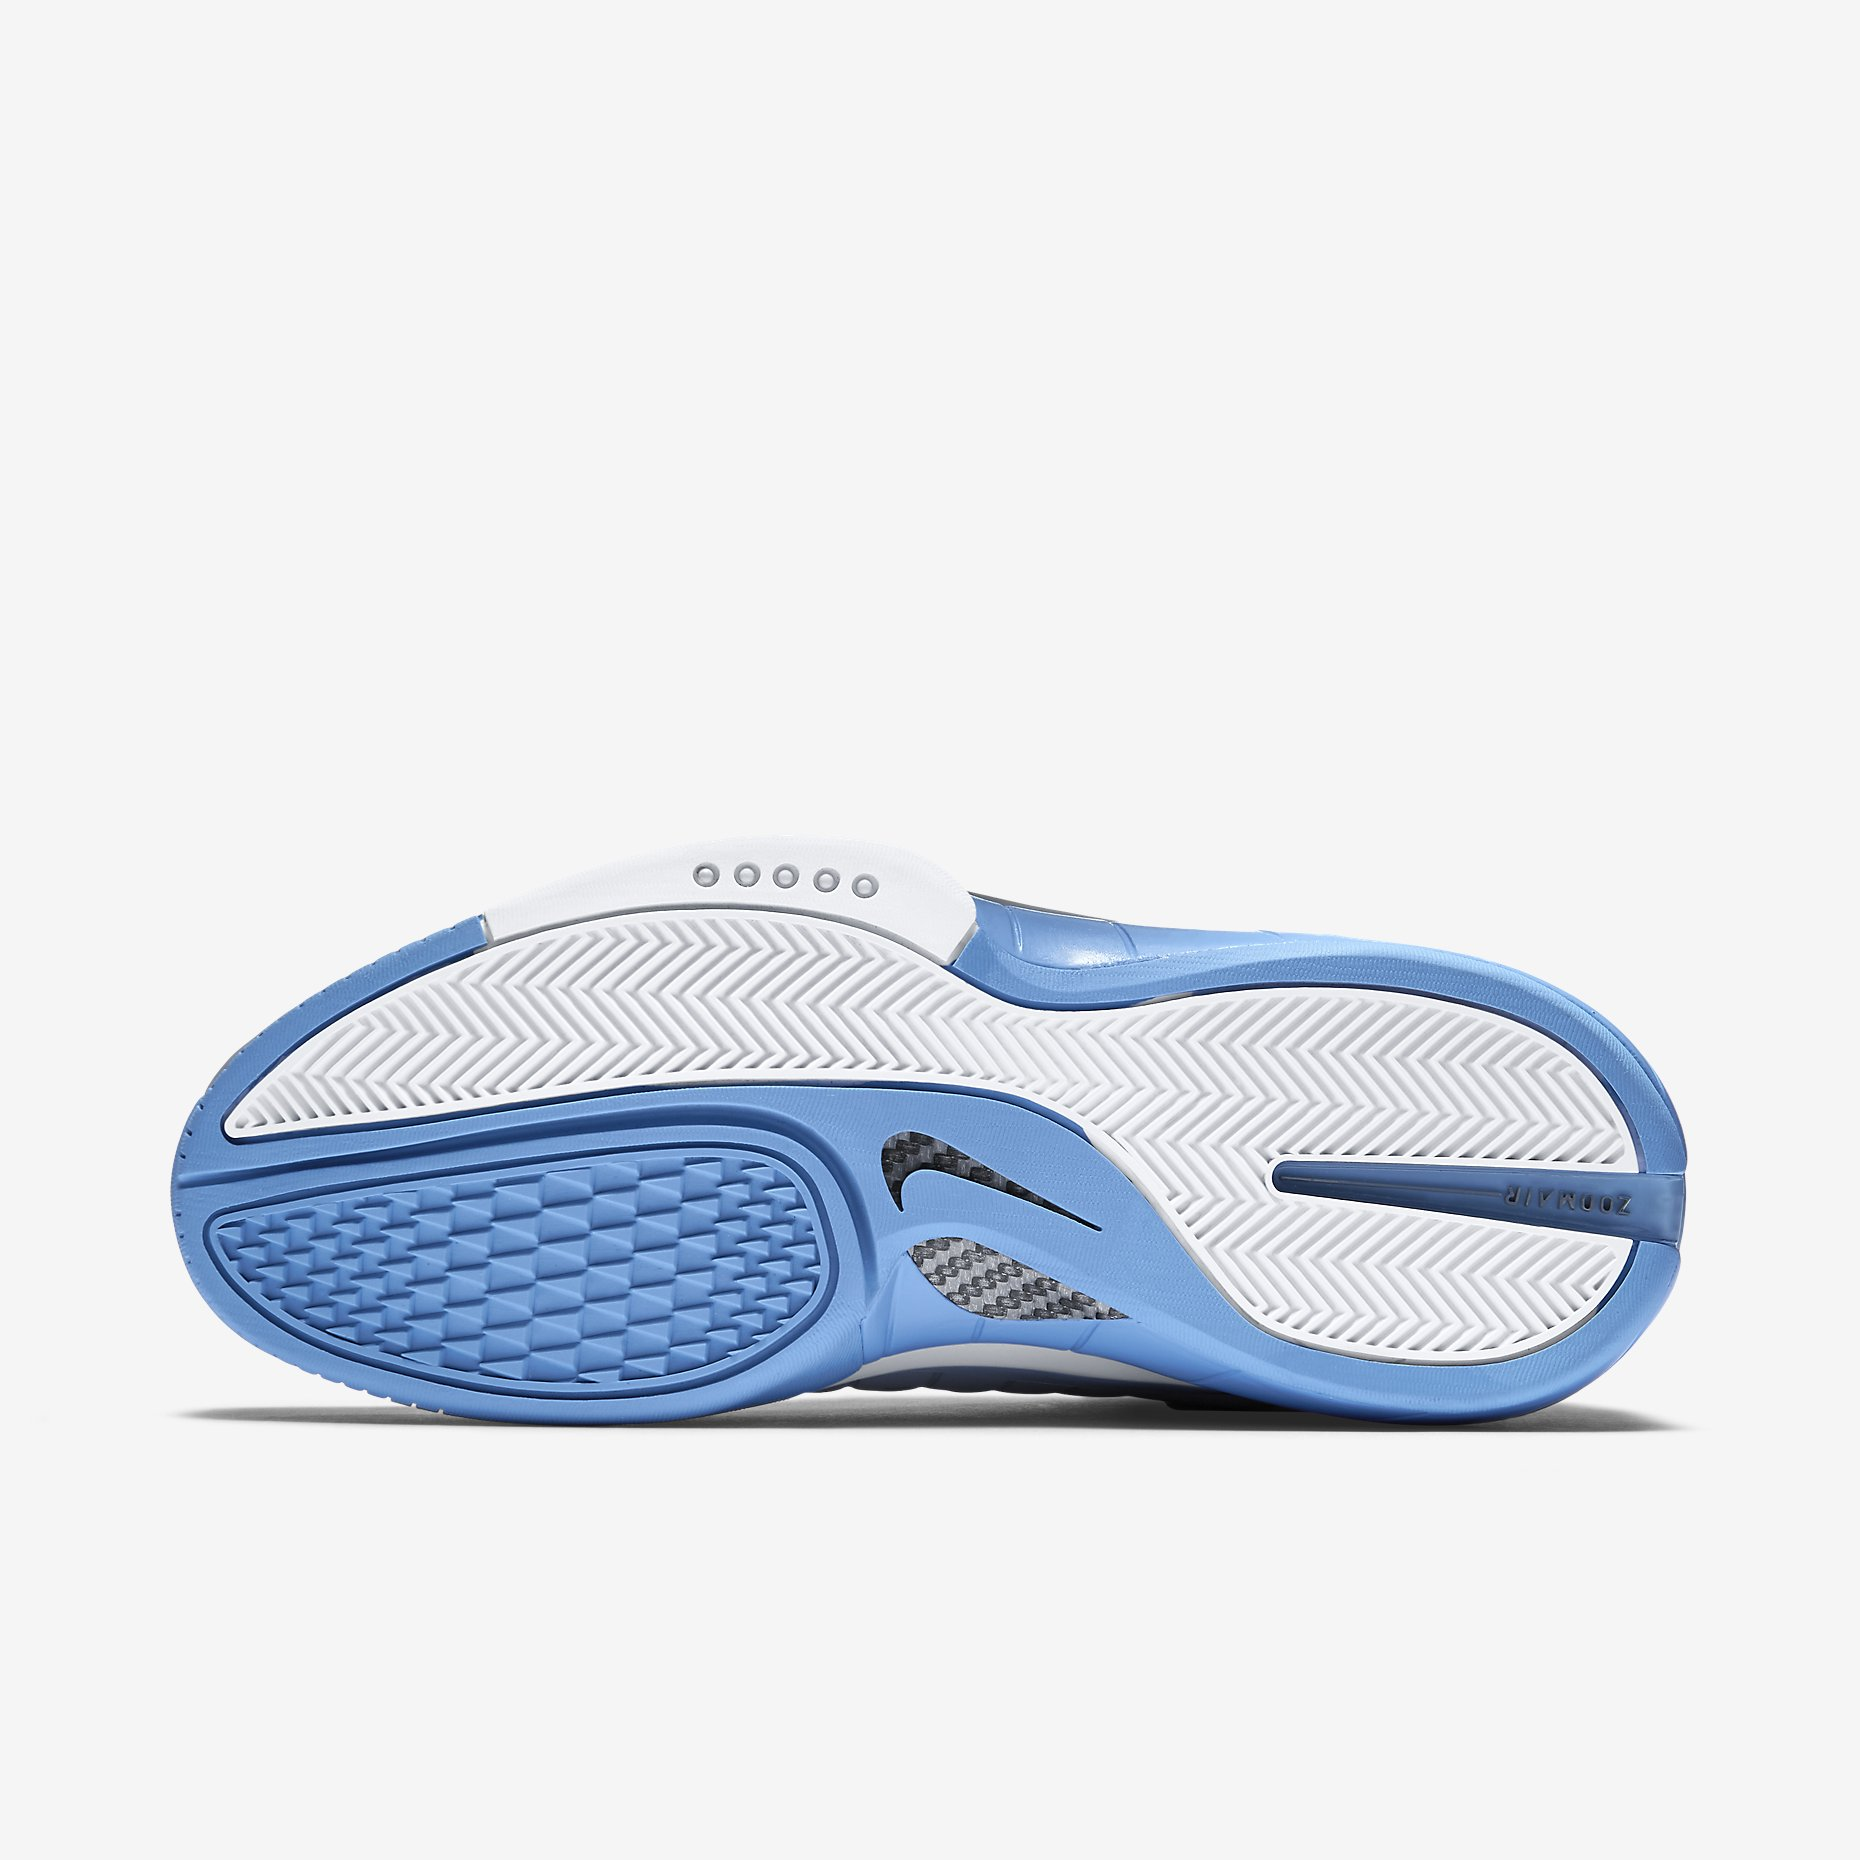 a78790b4e410 Nike Air Zoom Huarache 2K4 Color  Wolf Grey University Blue-White-Wolf Grey  Style  308475-002. Price   150.00